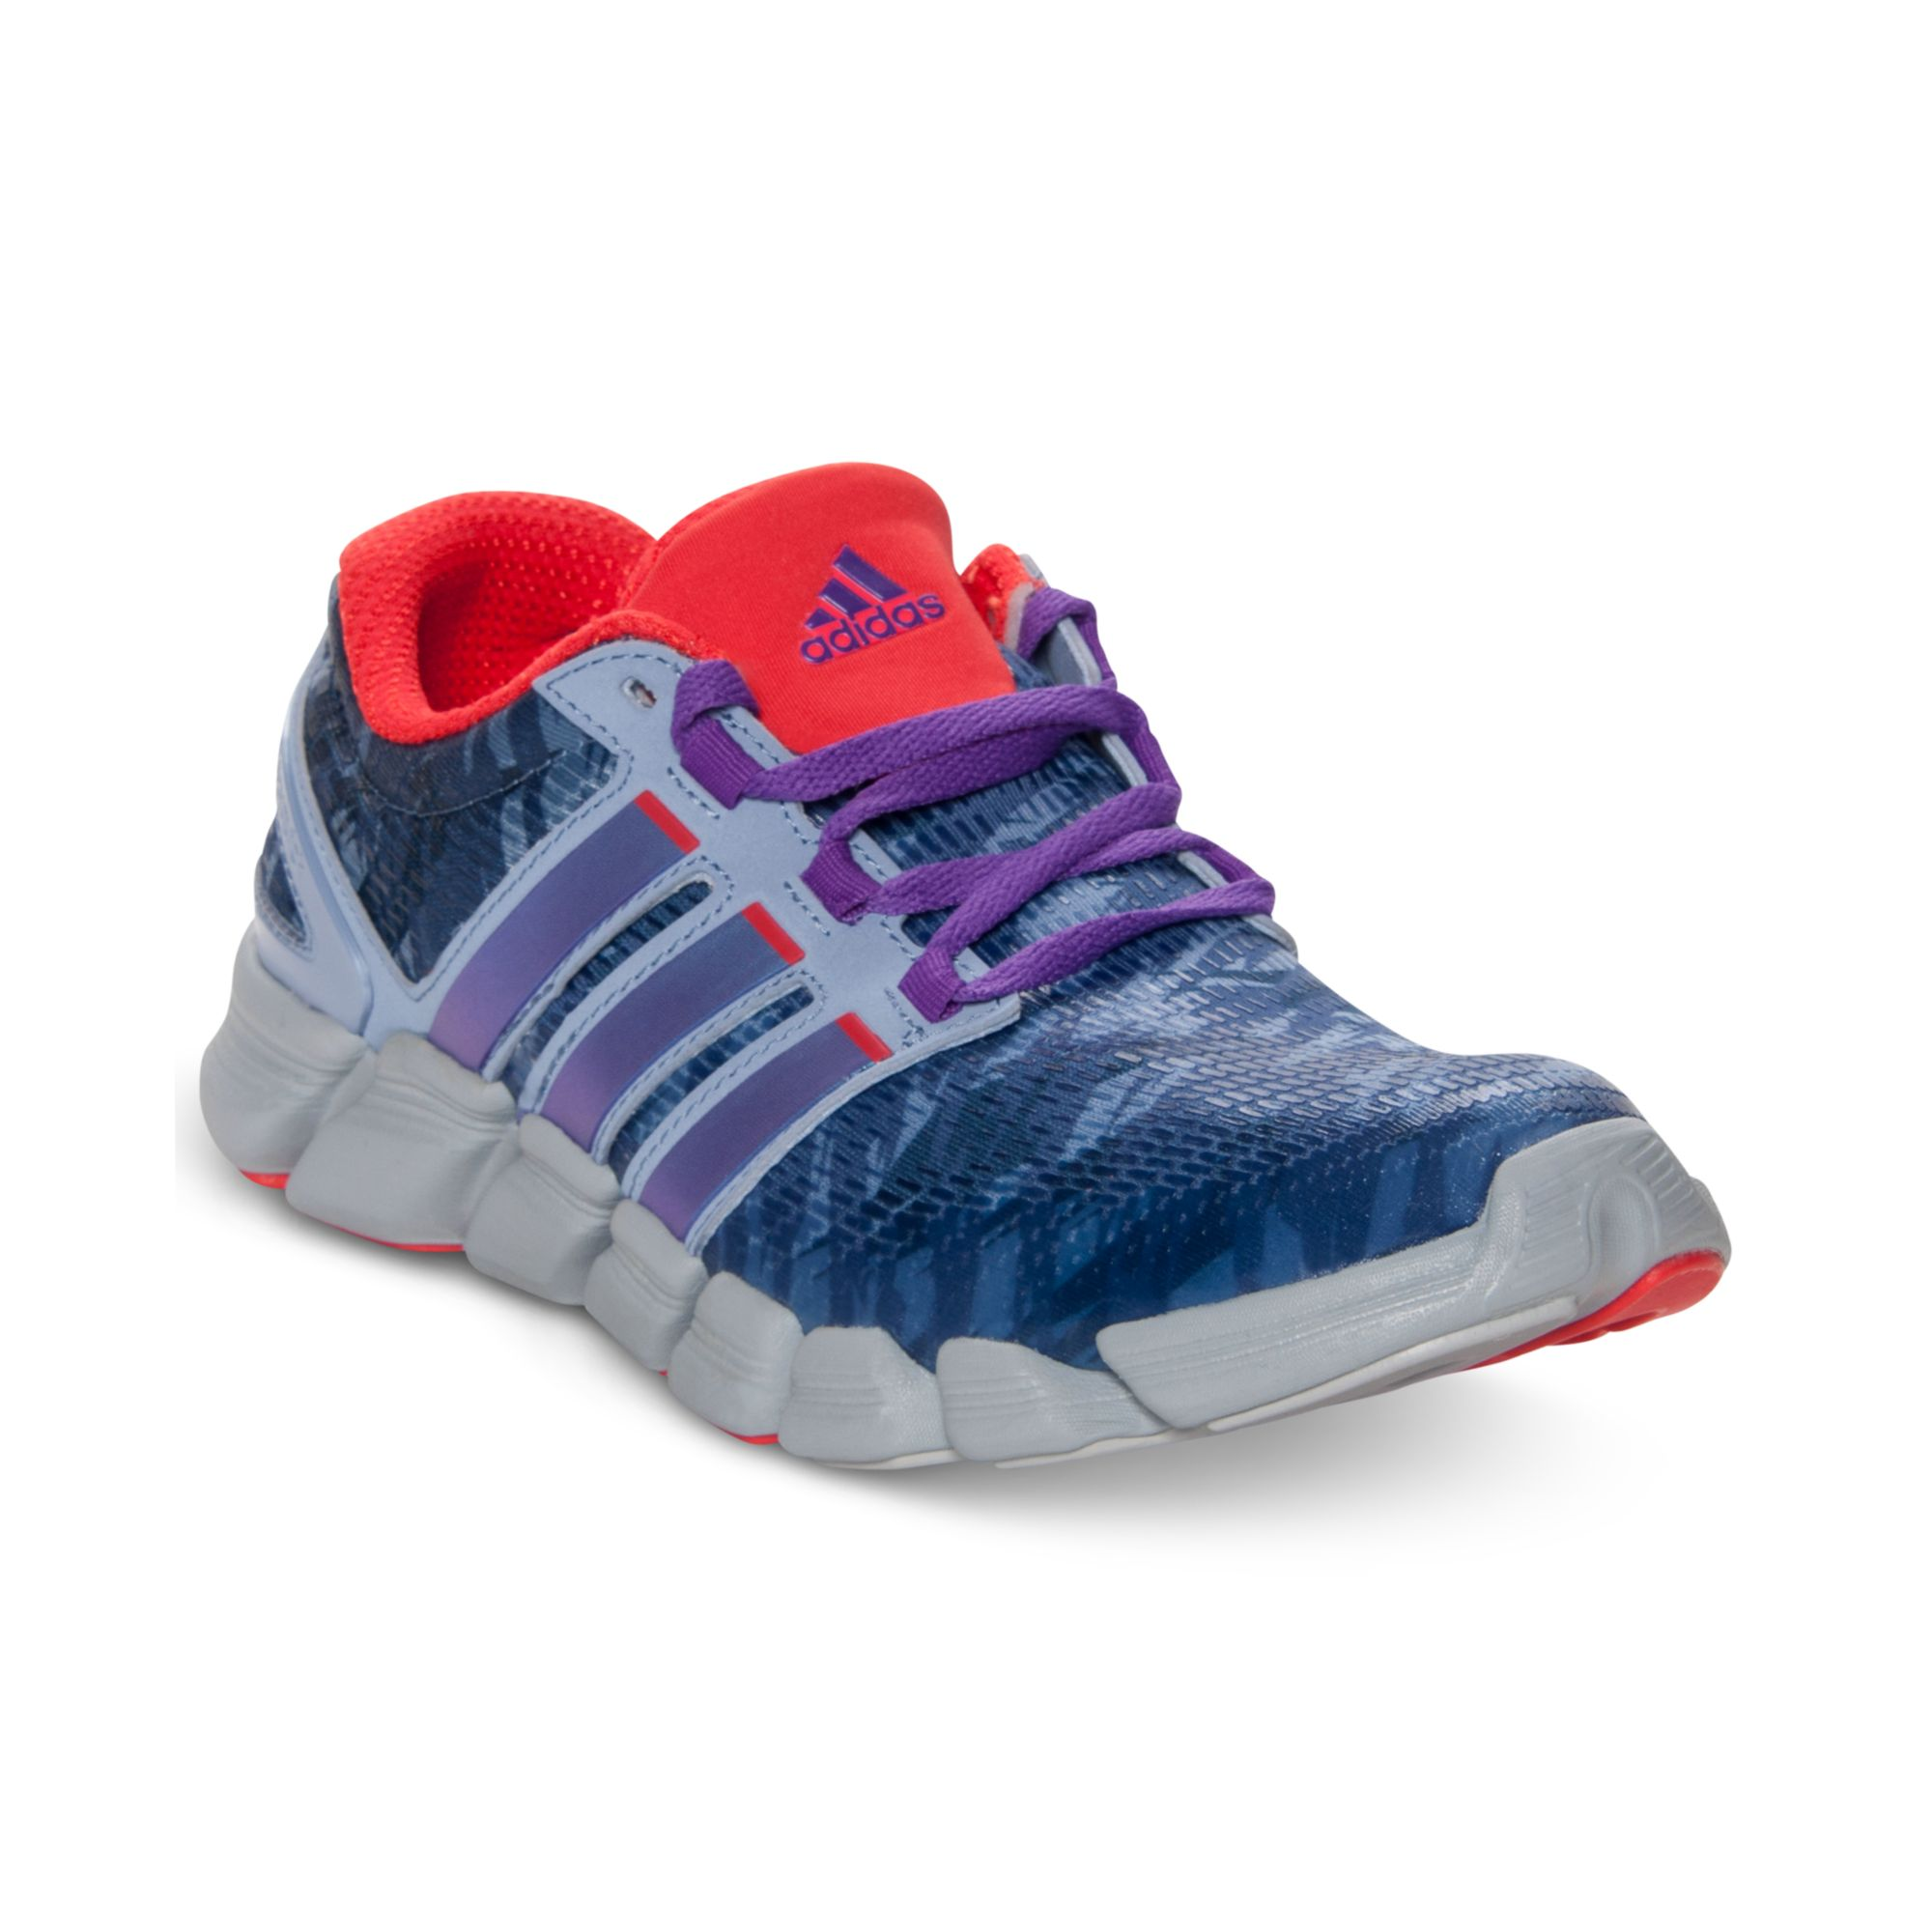 Adidas Adipure Crazyquick Running Shoes